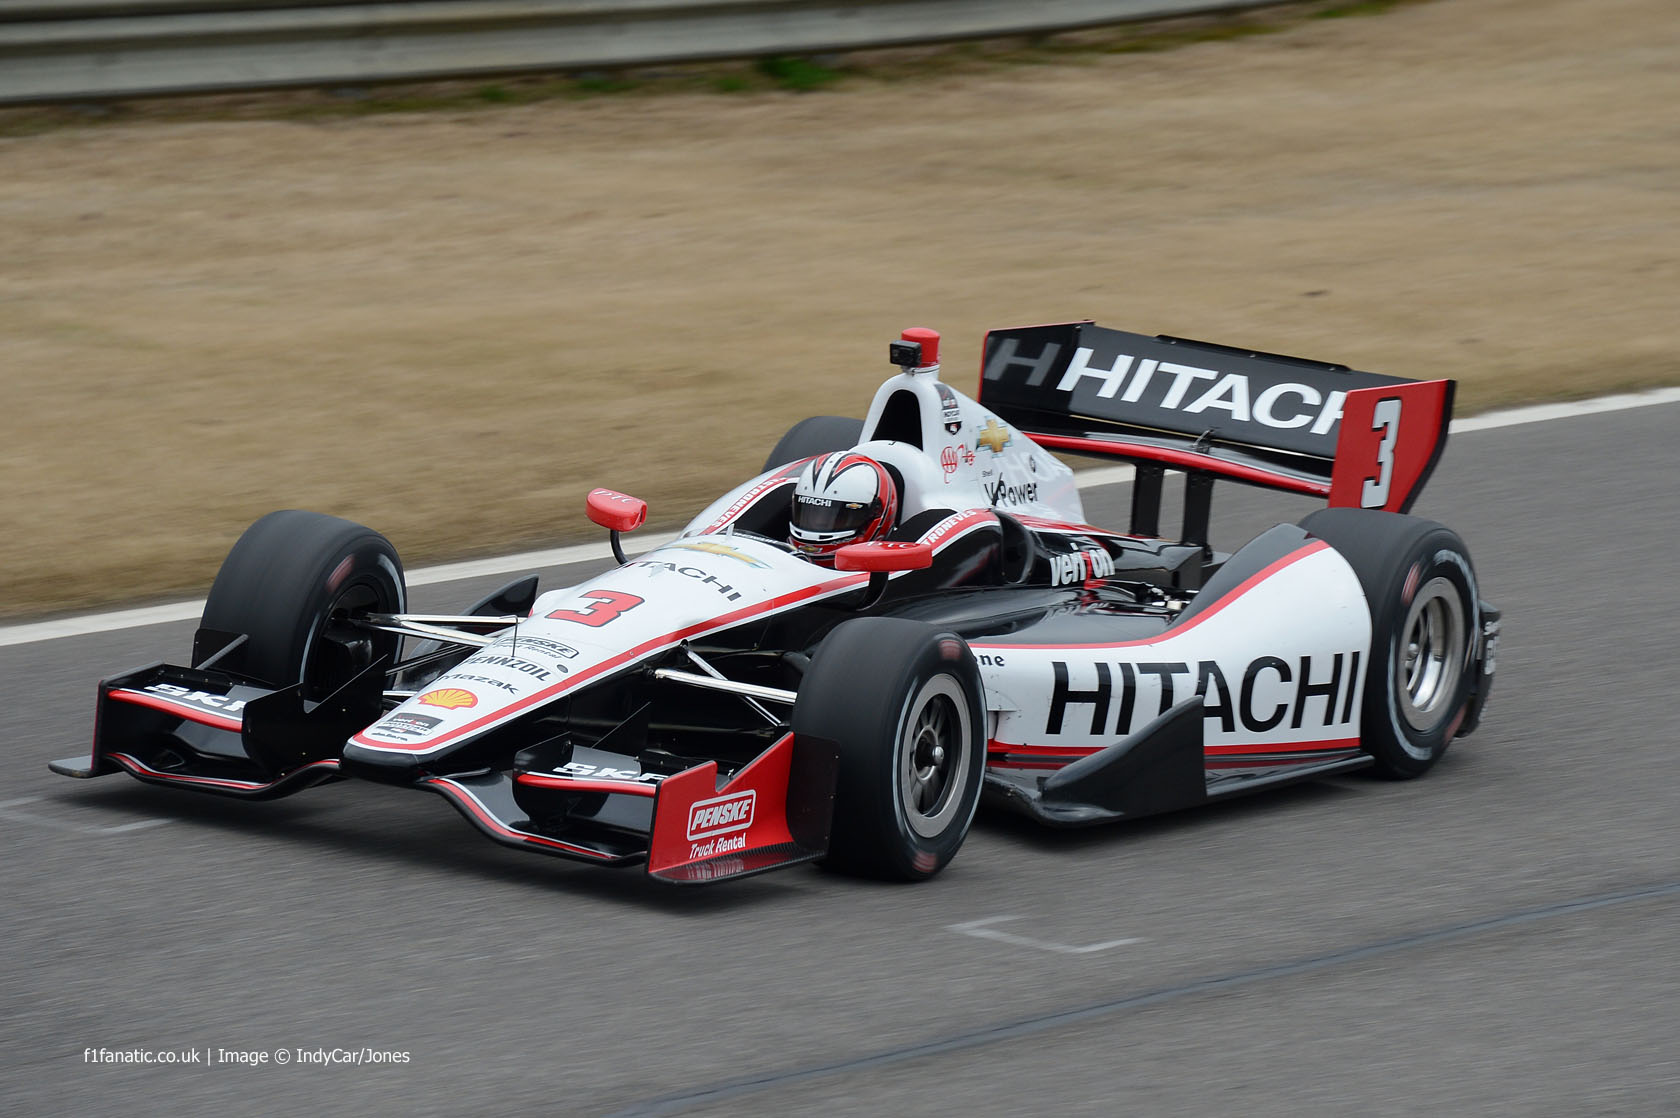 Helio Castroneves, Penske, Barber Motorsport Park, 2014